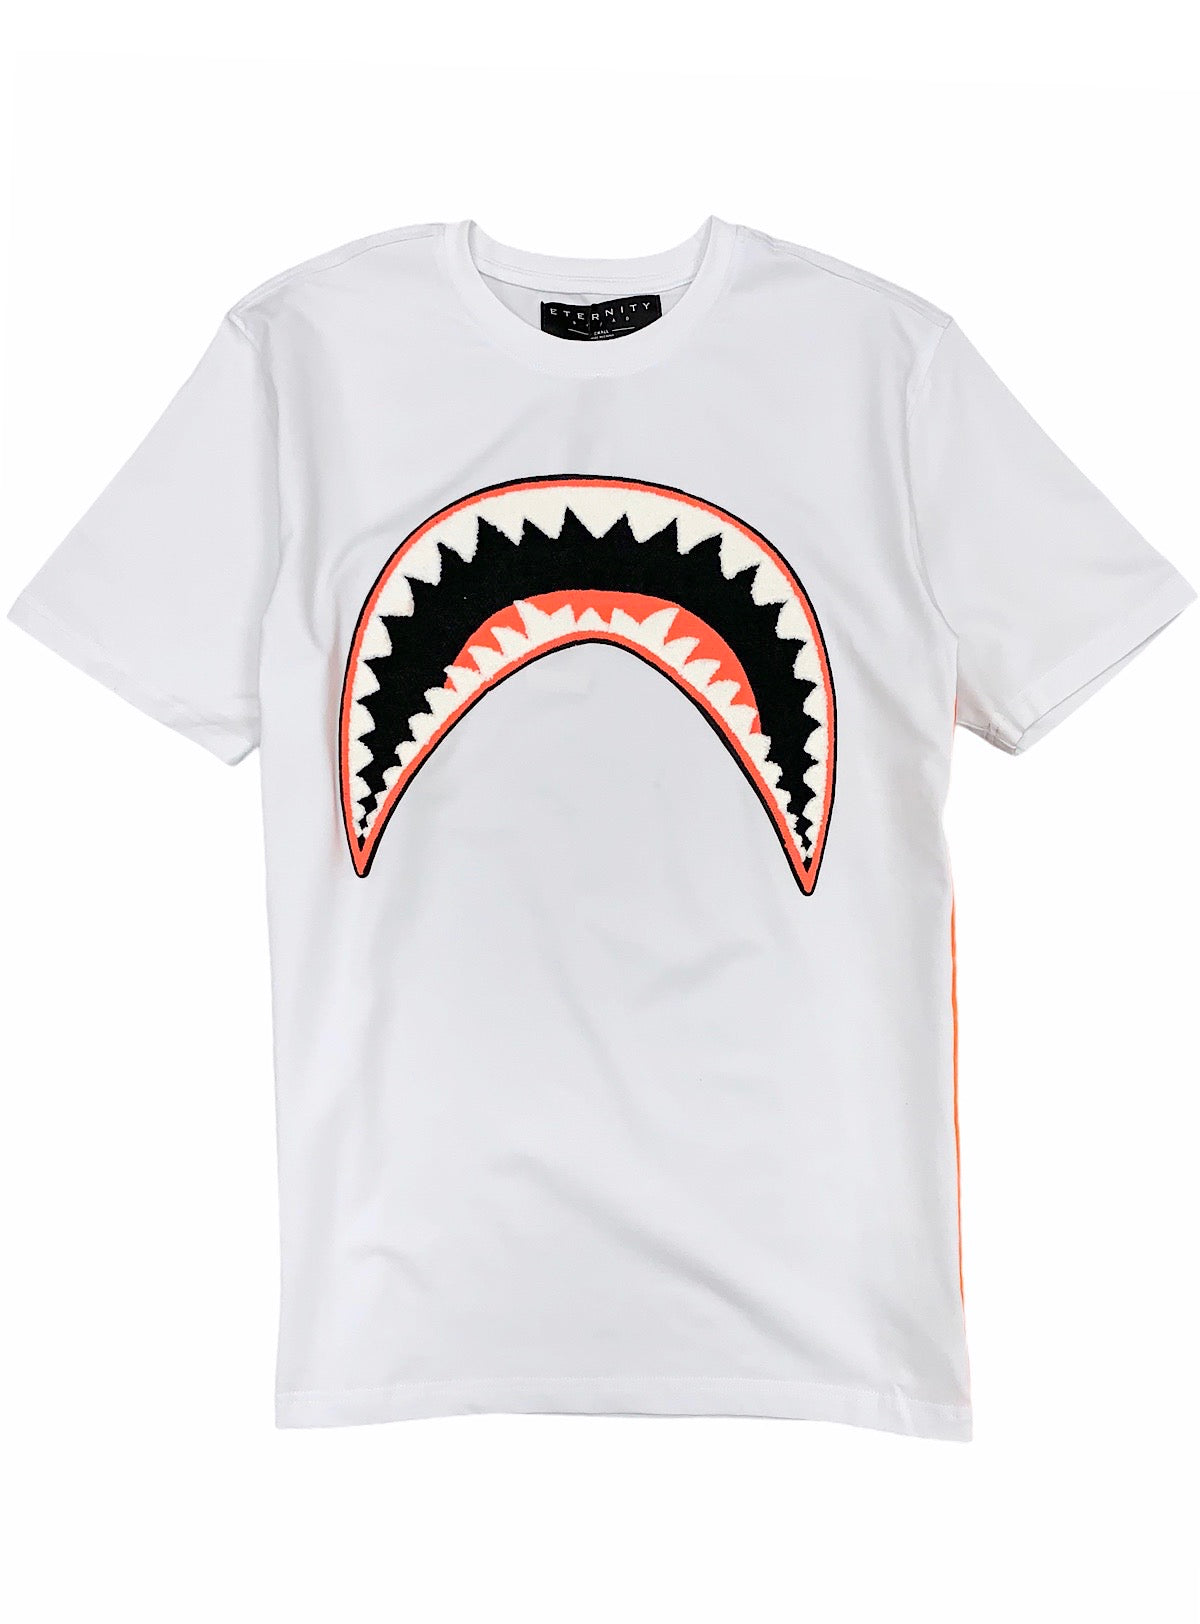 Eternity T-Shirt - Shark Mouth - White And Orange - E1133195